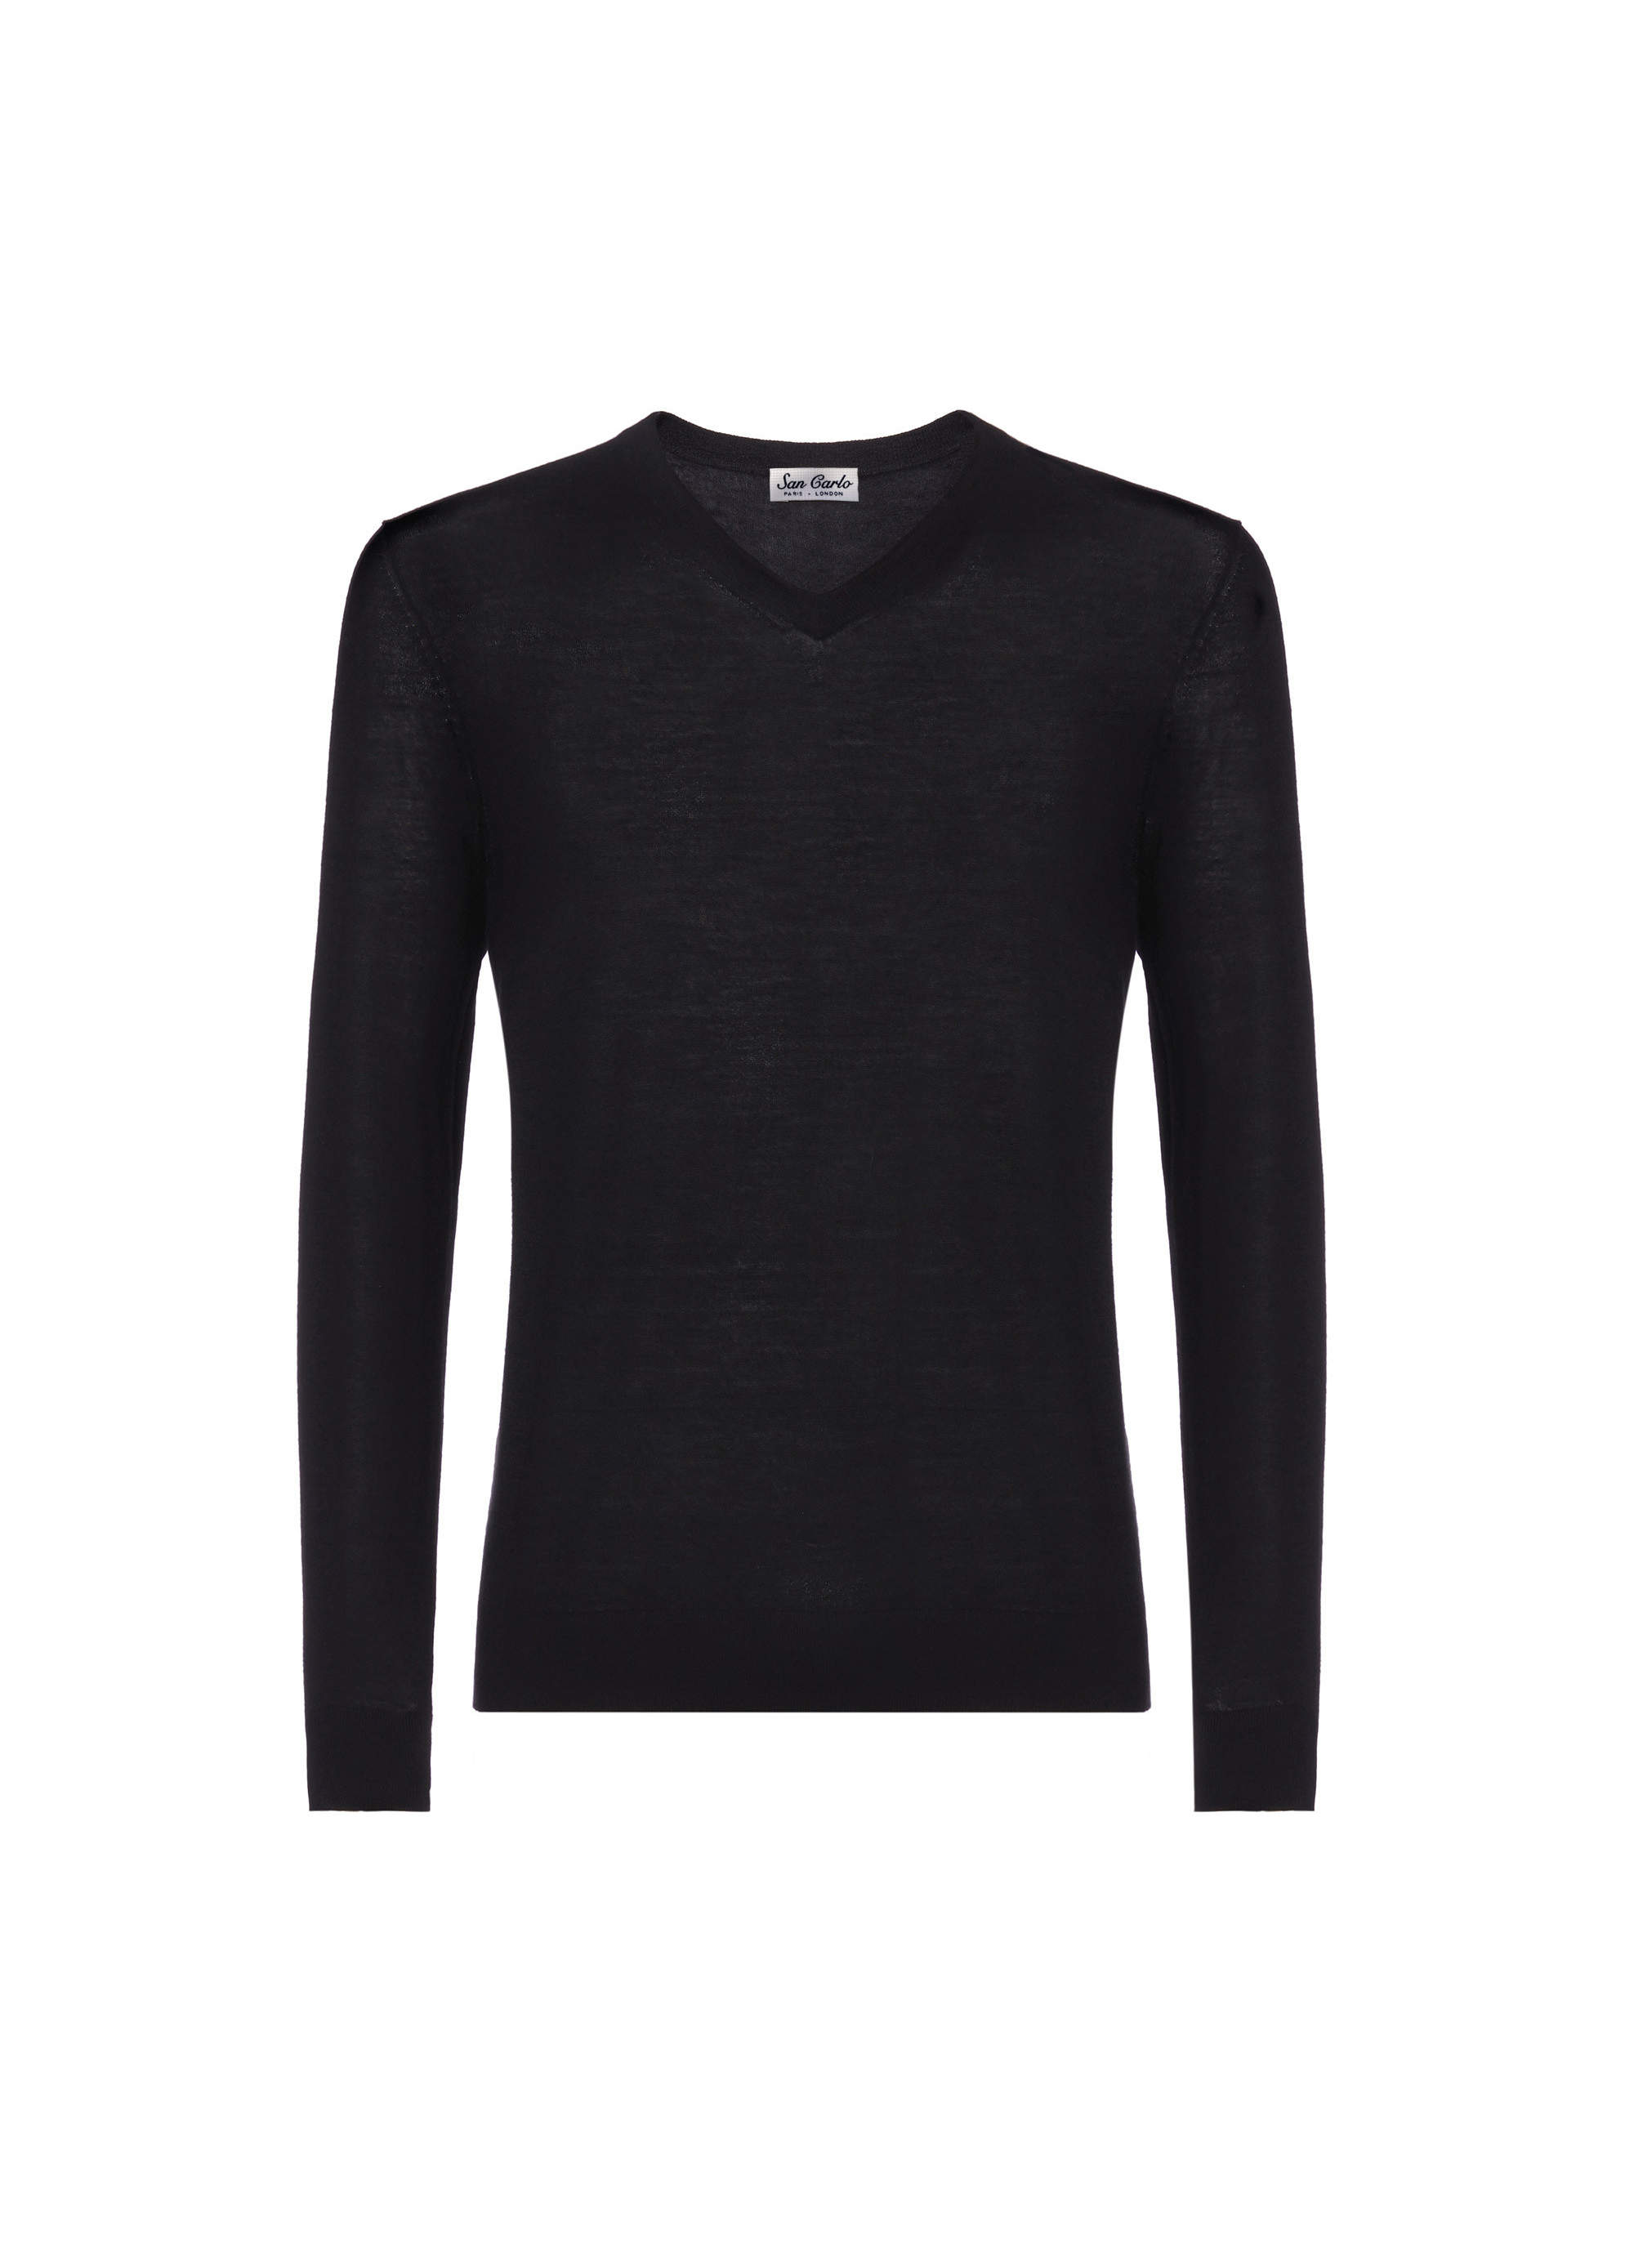 v-neck silk & cashmere black 02.jpg